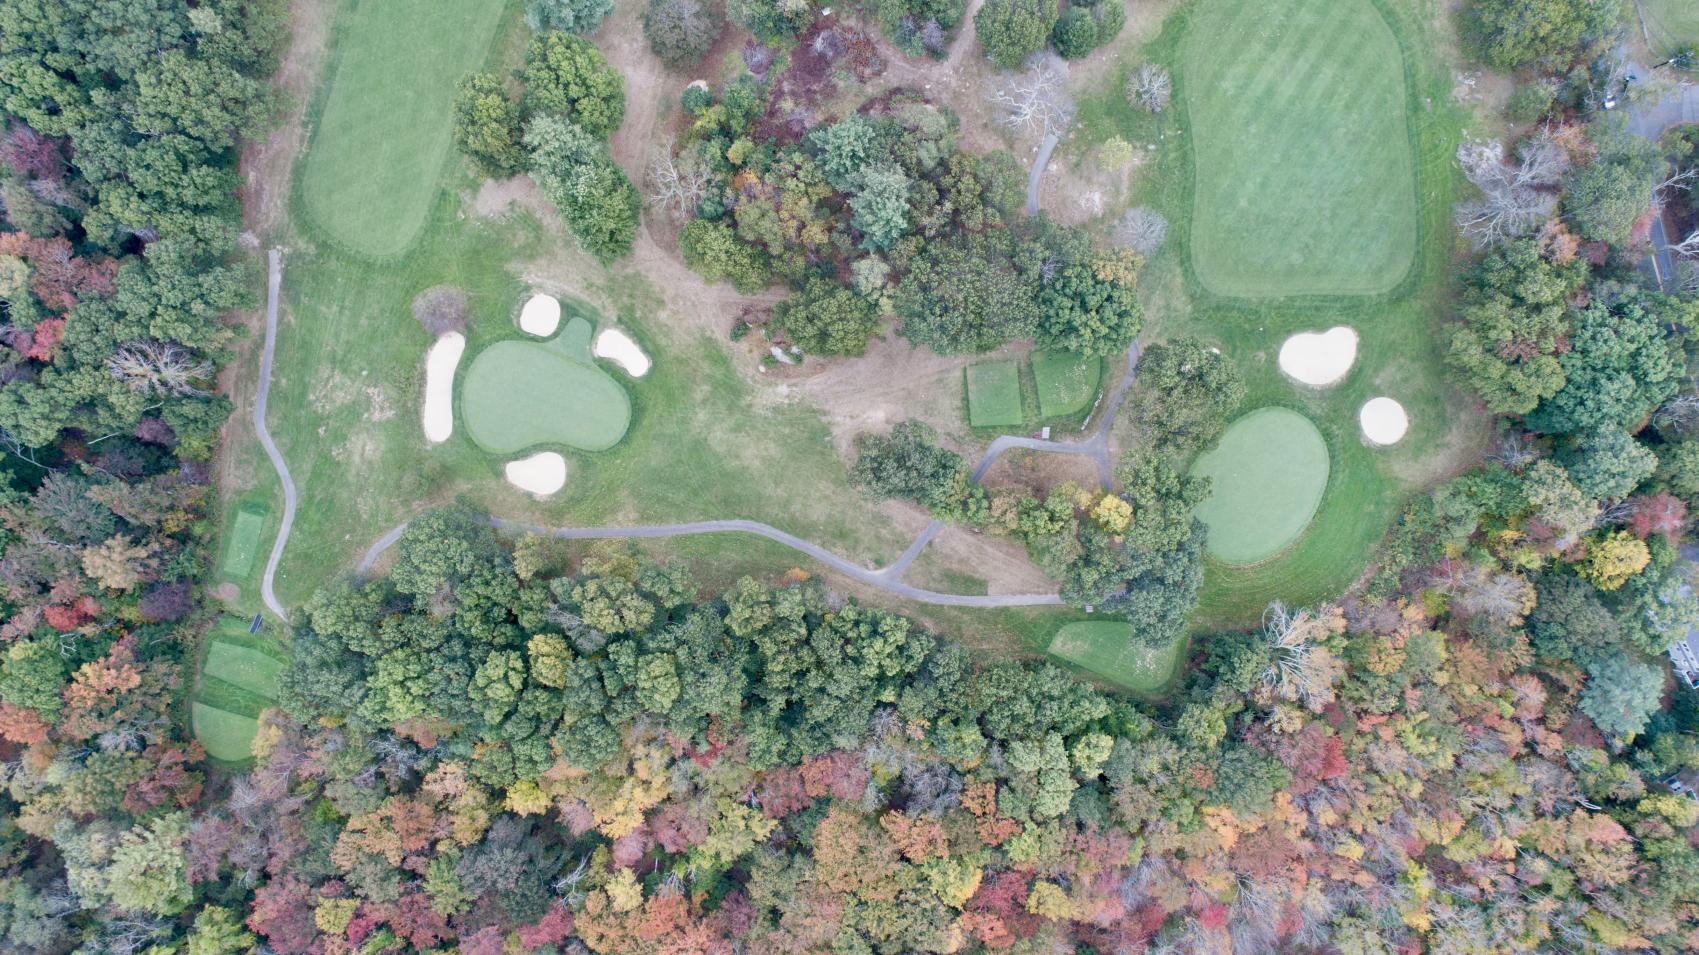 8th Green (left), 7th Green (right)